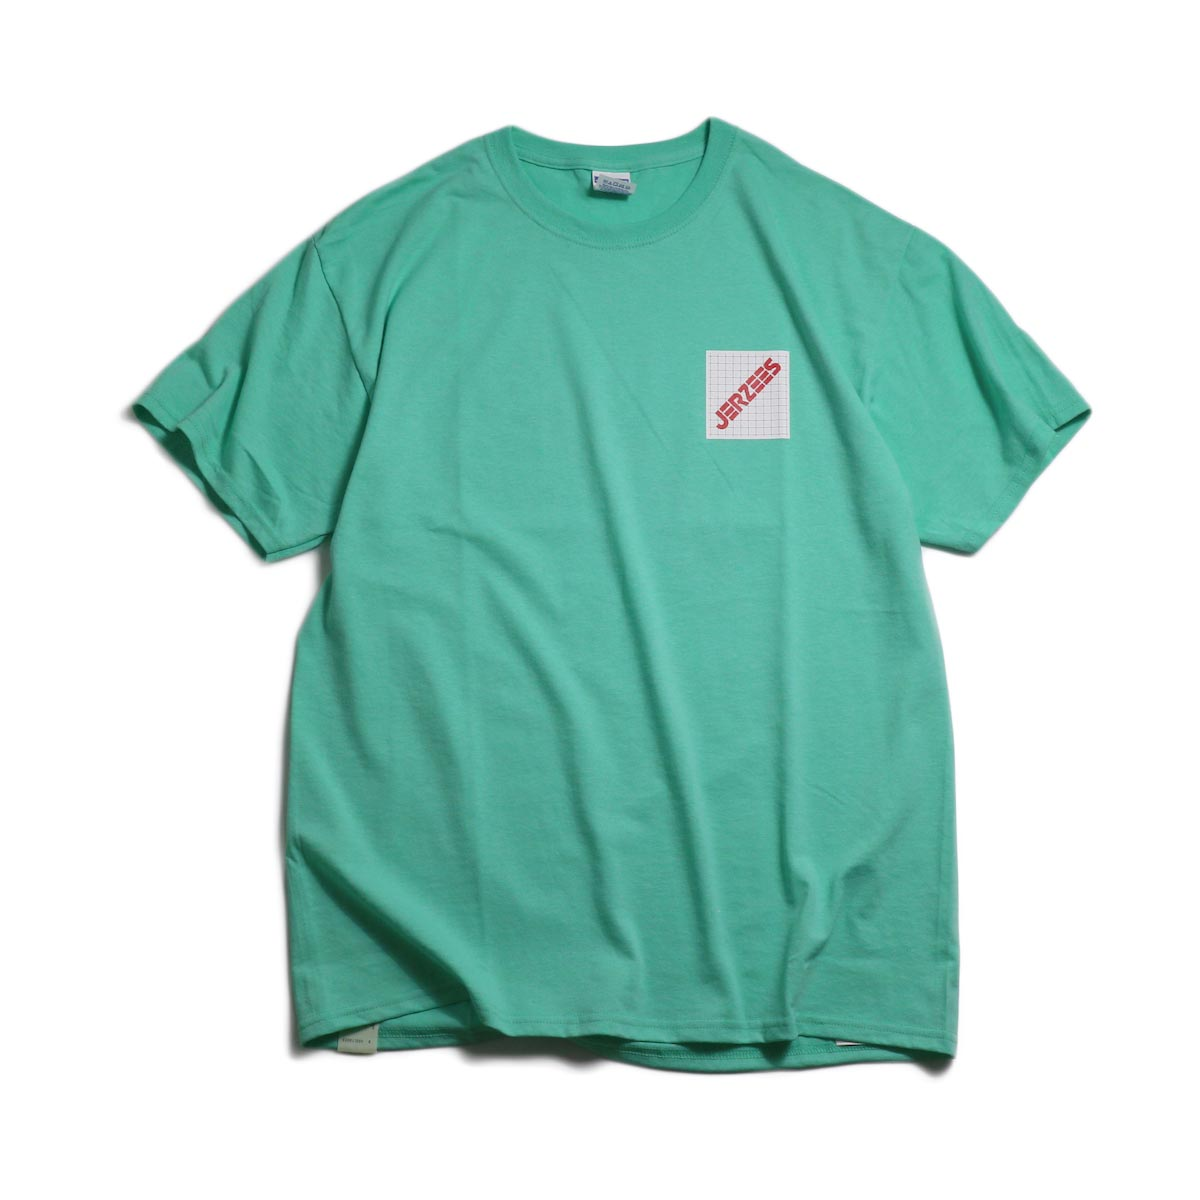 N.HOOLYWOOD × JERZEES  / 191-CS44-070 Short Sleeve Tee -Mint 正面